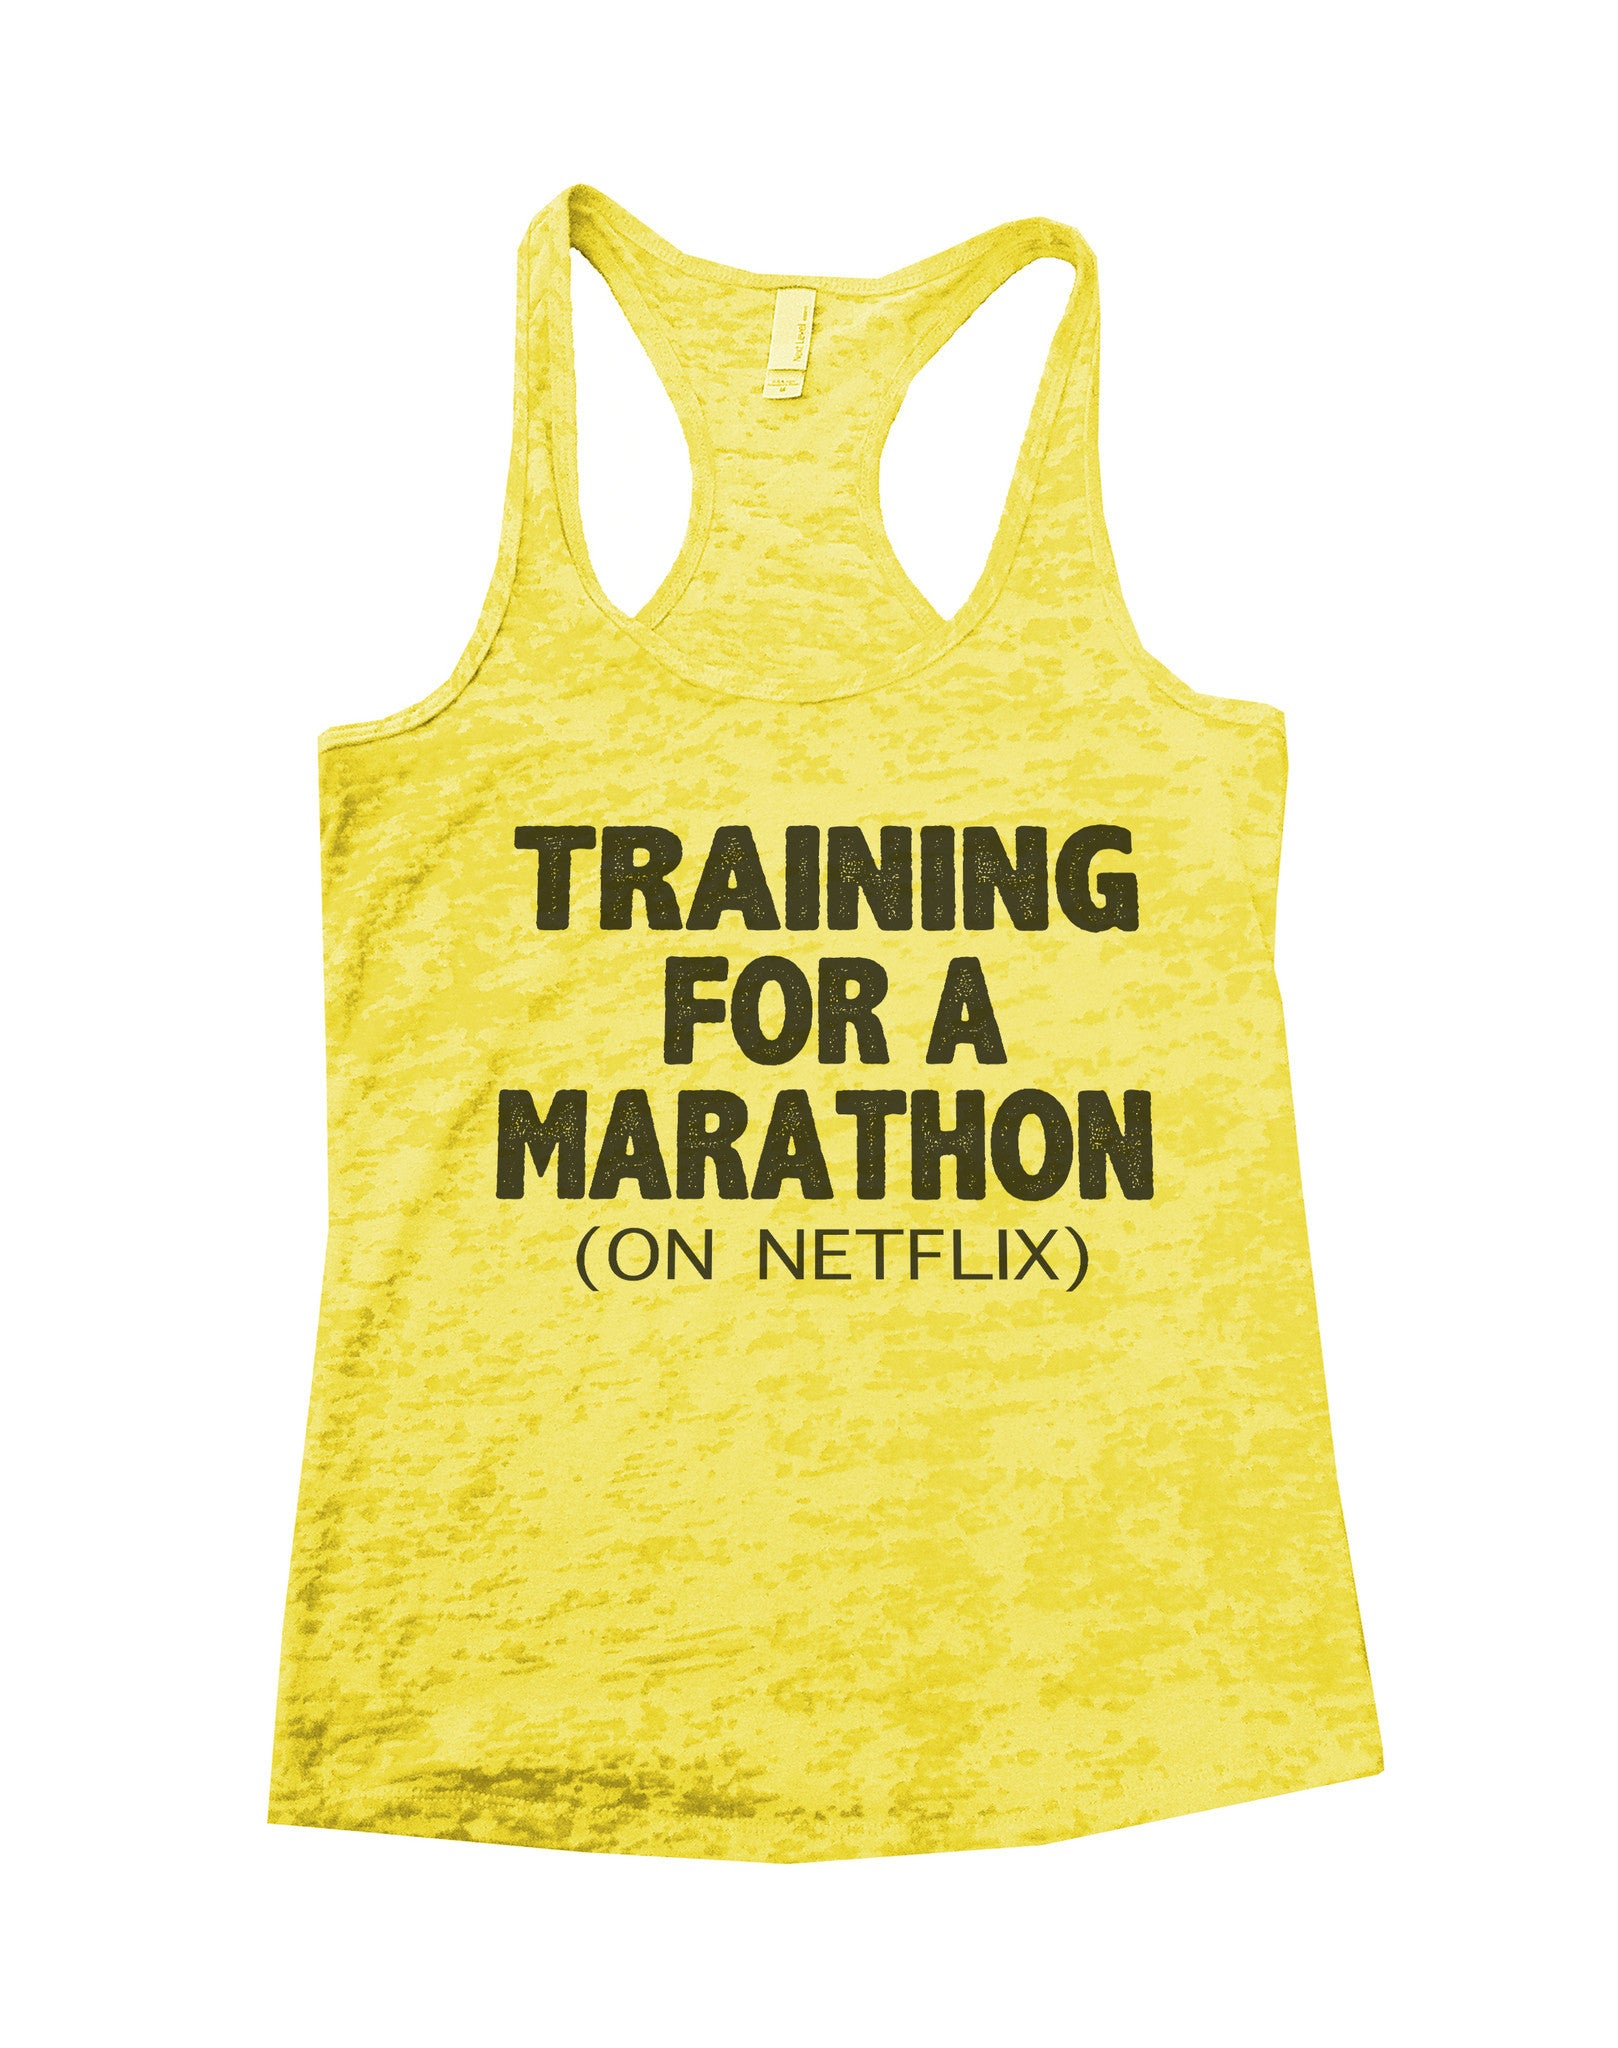 Training For A Marathon On Netflix Burnout Tank Top By BurnoutTankTops.com - 741 - Funny Shirts Tank Tops Burnouts and Triblends  - 6